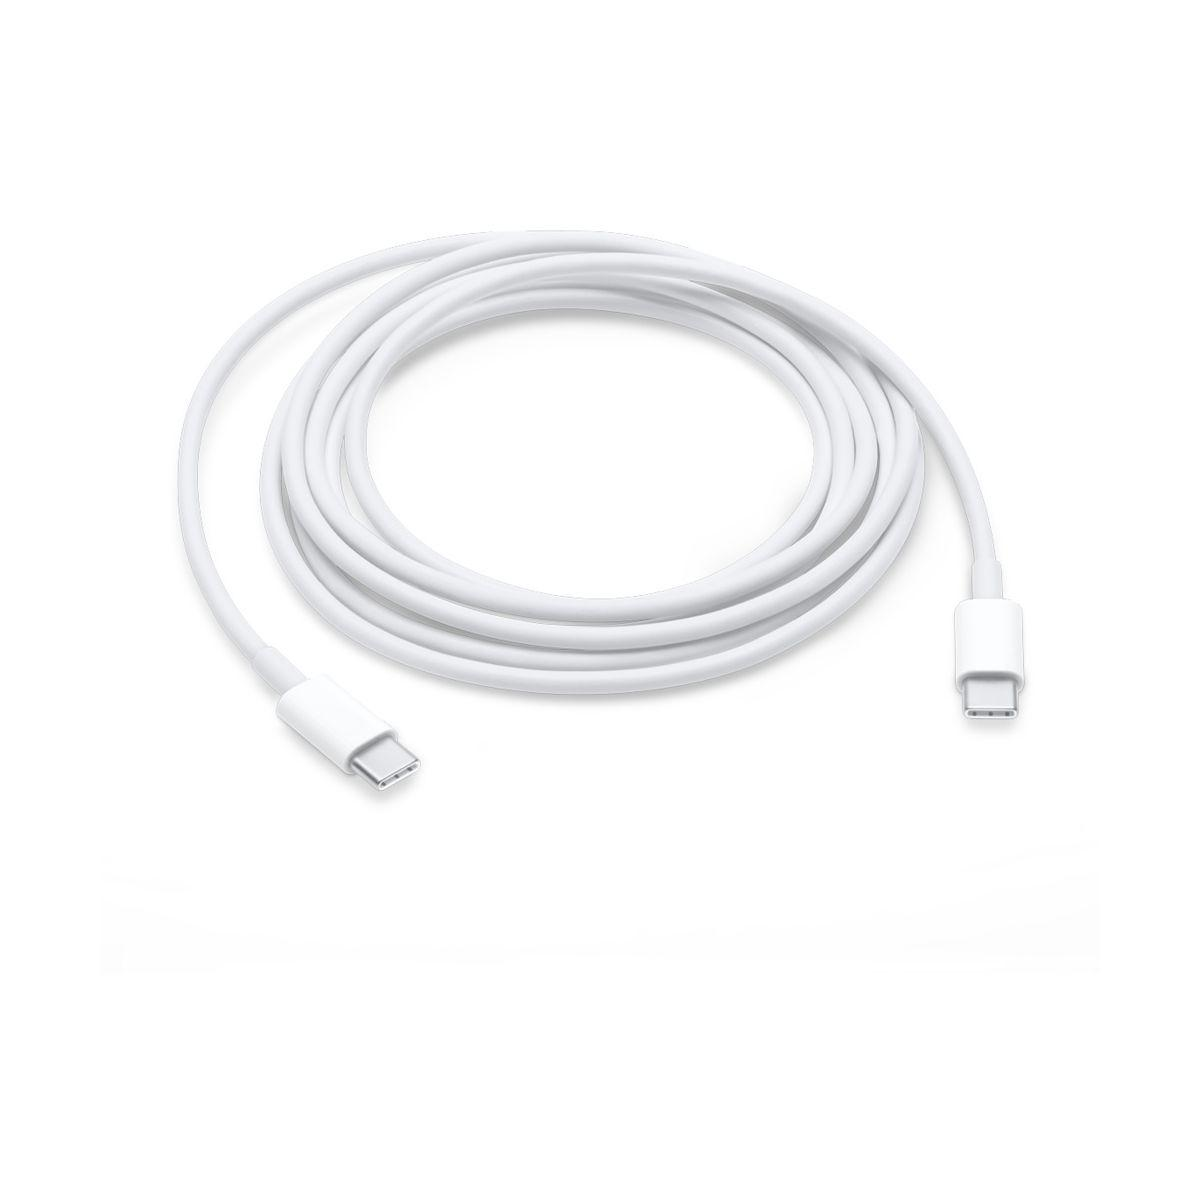 C�ble apple usb-c 2m (photo)